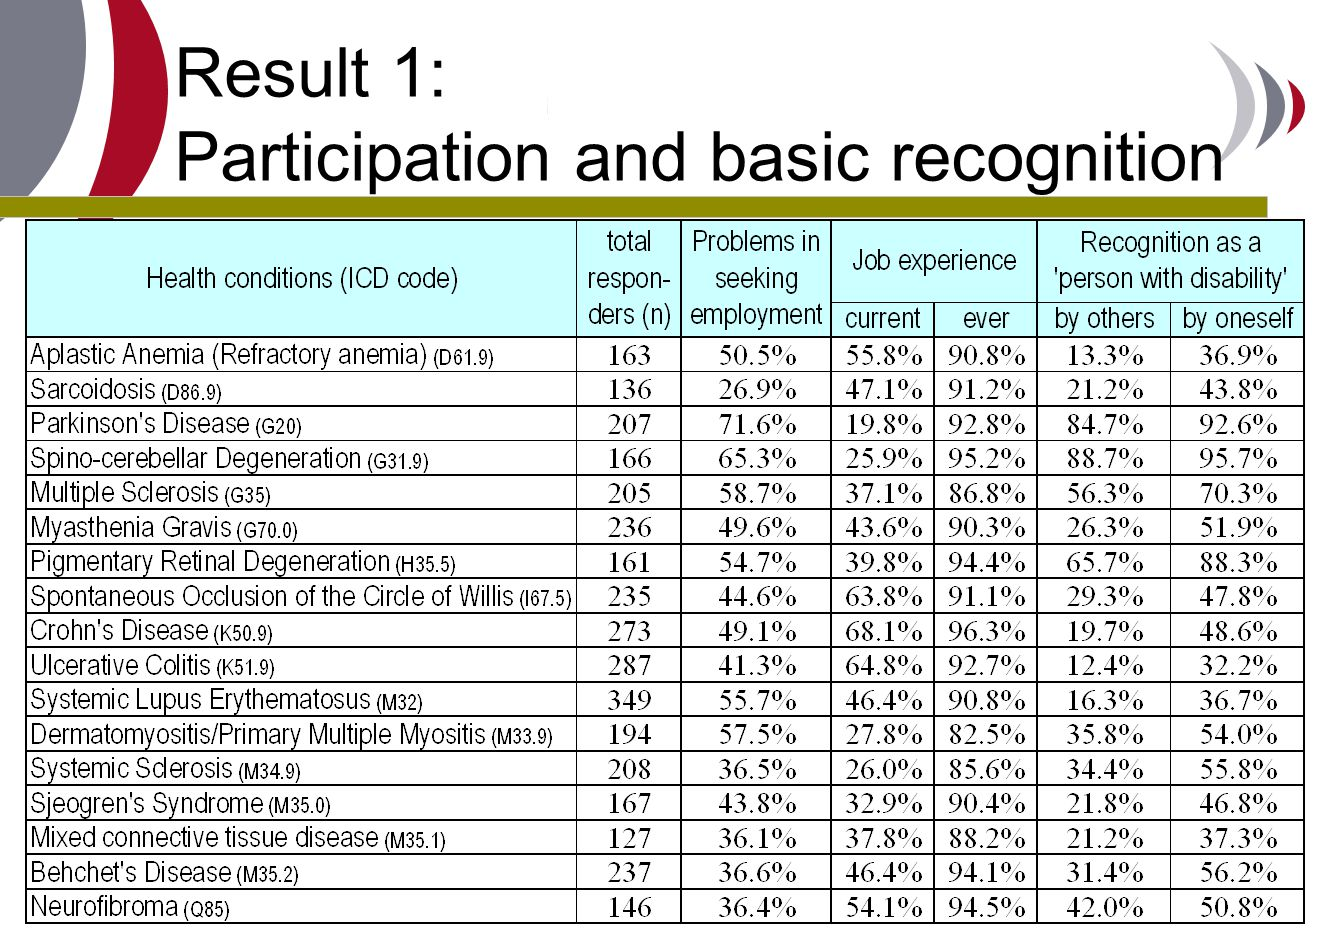 Result 1: Participation and basic recognition